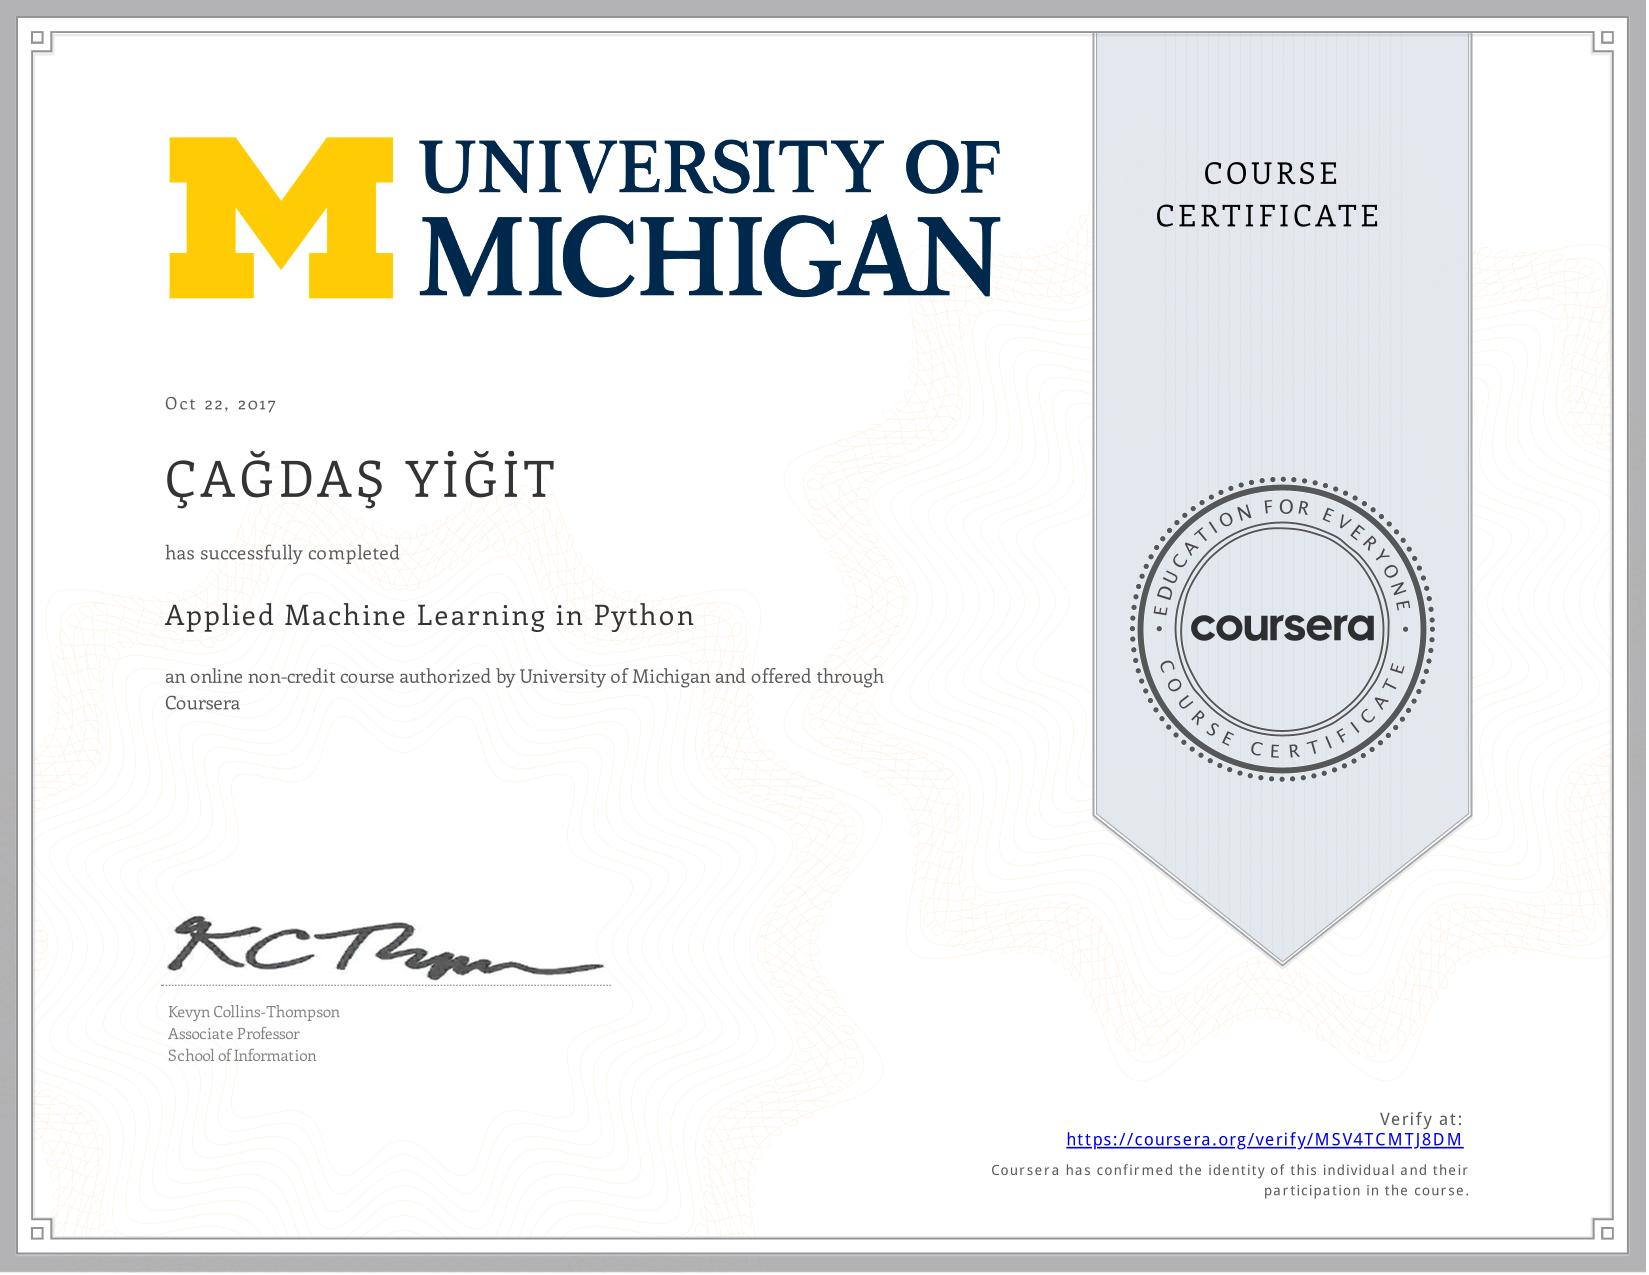 View certificate for ÇAĞDAŞ YİĞİT, Applied Machine Learning in Python, an online non-credit course authorized by University of Michigan and offered through Coursera